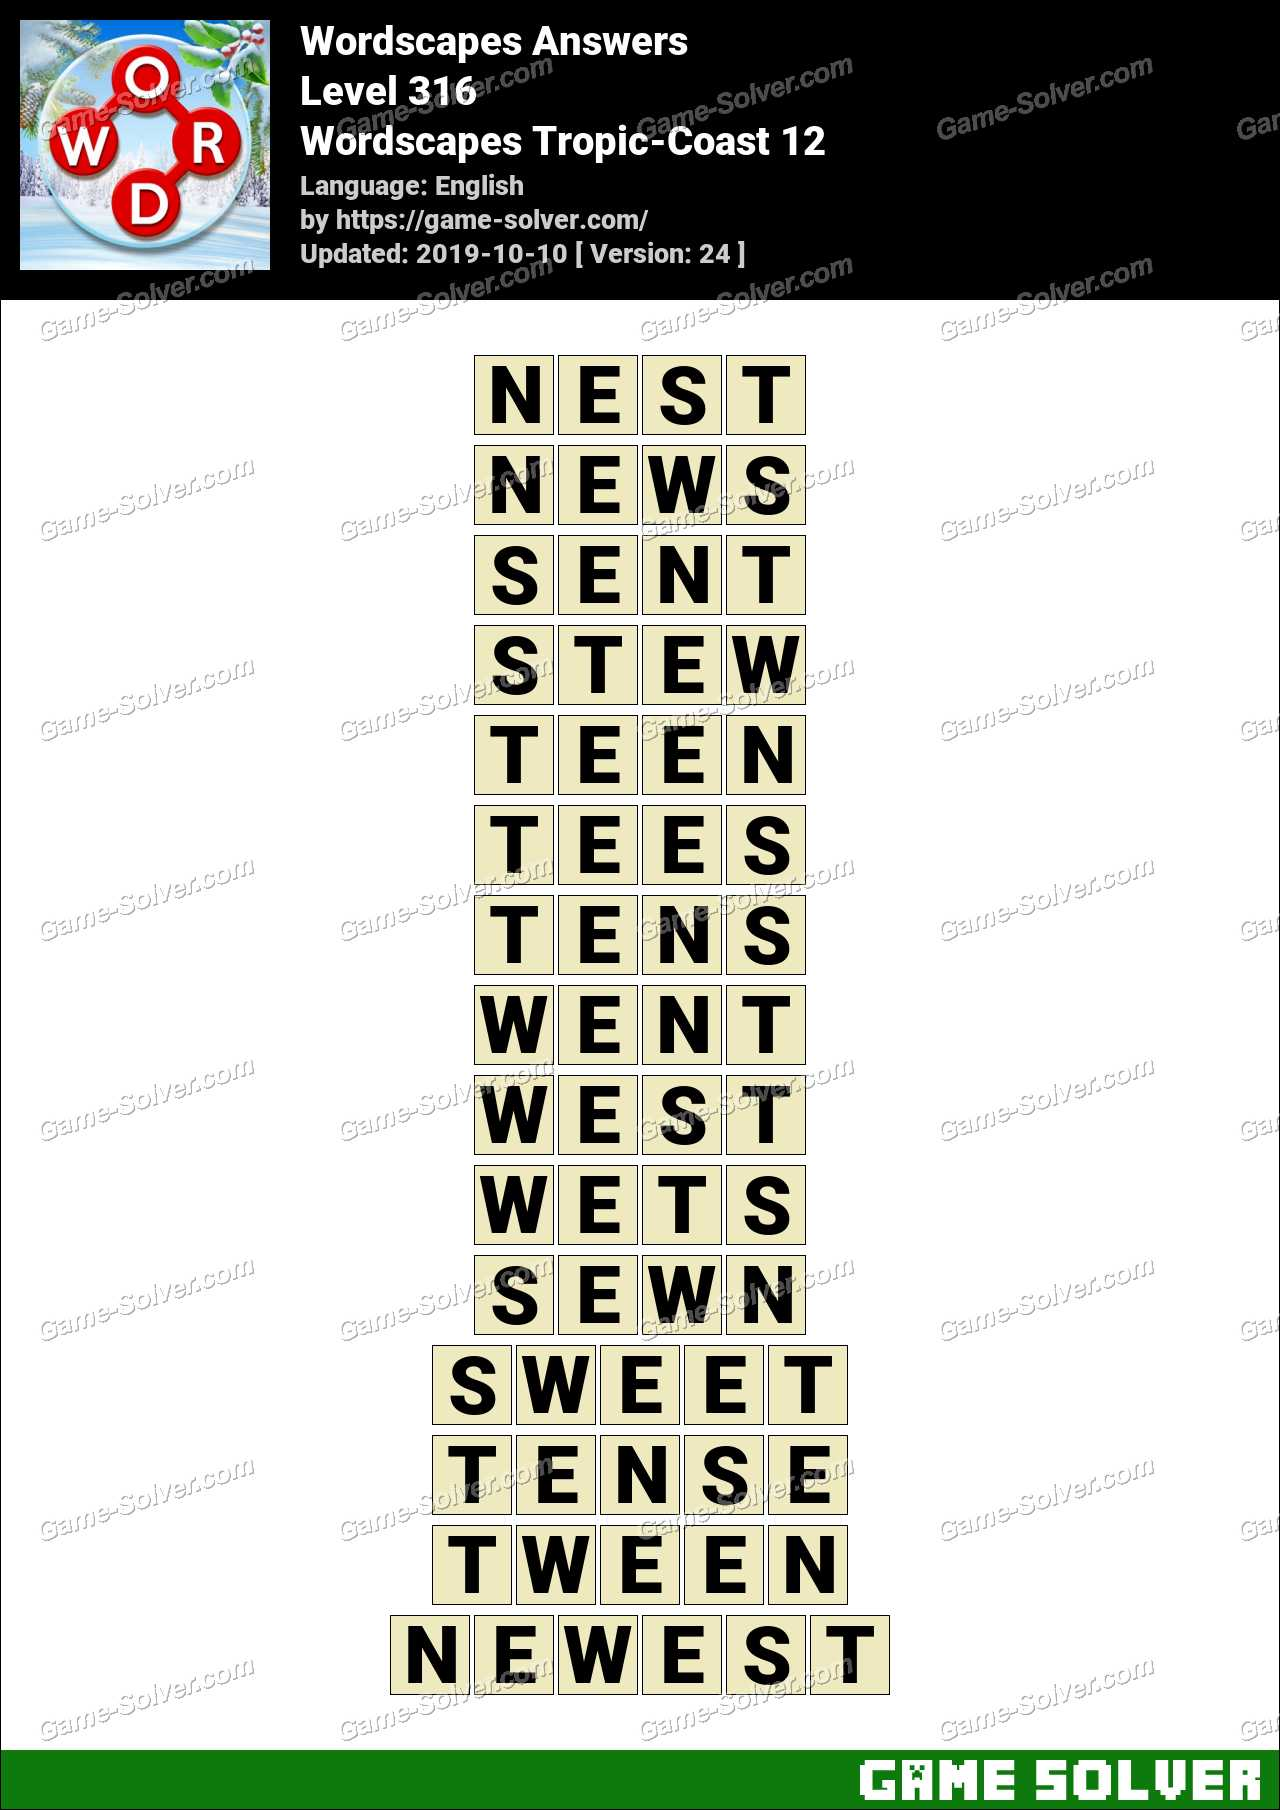 Wordscapes Tropic-Coast 12 Answers